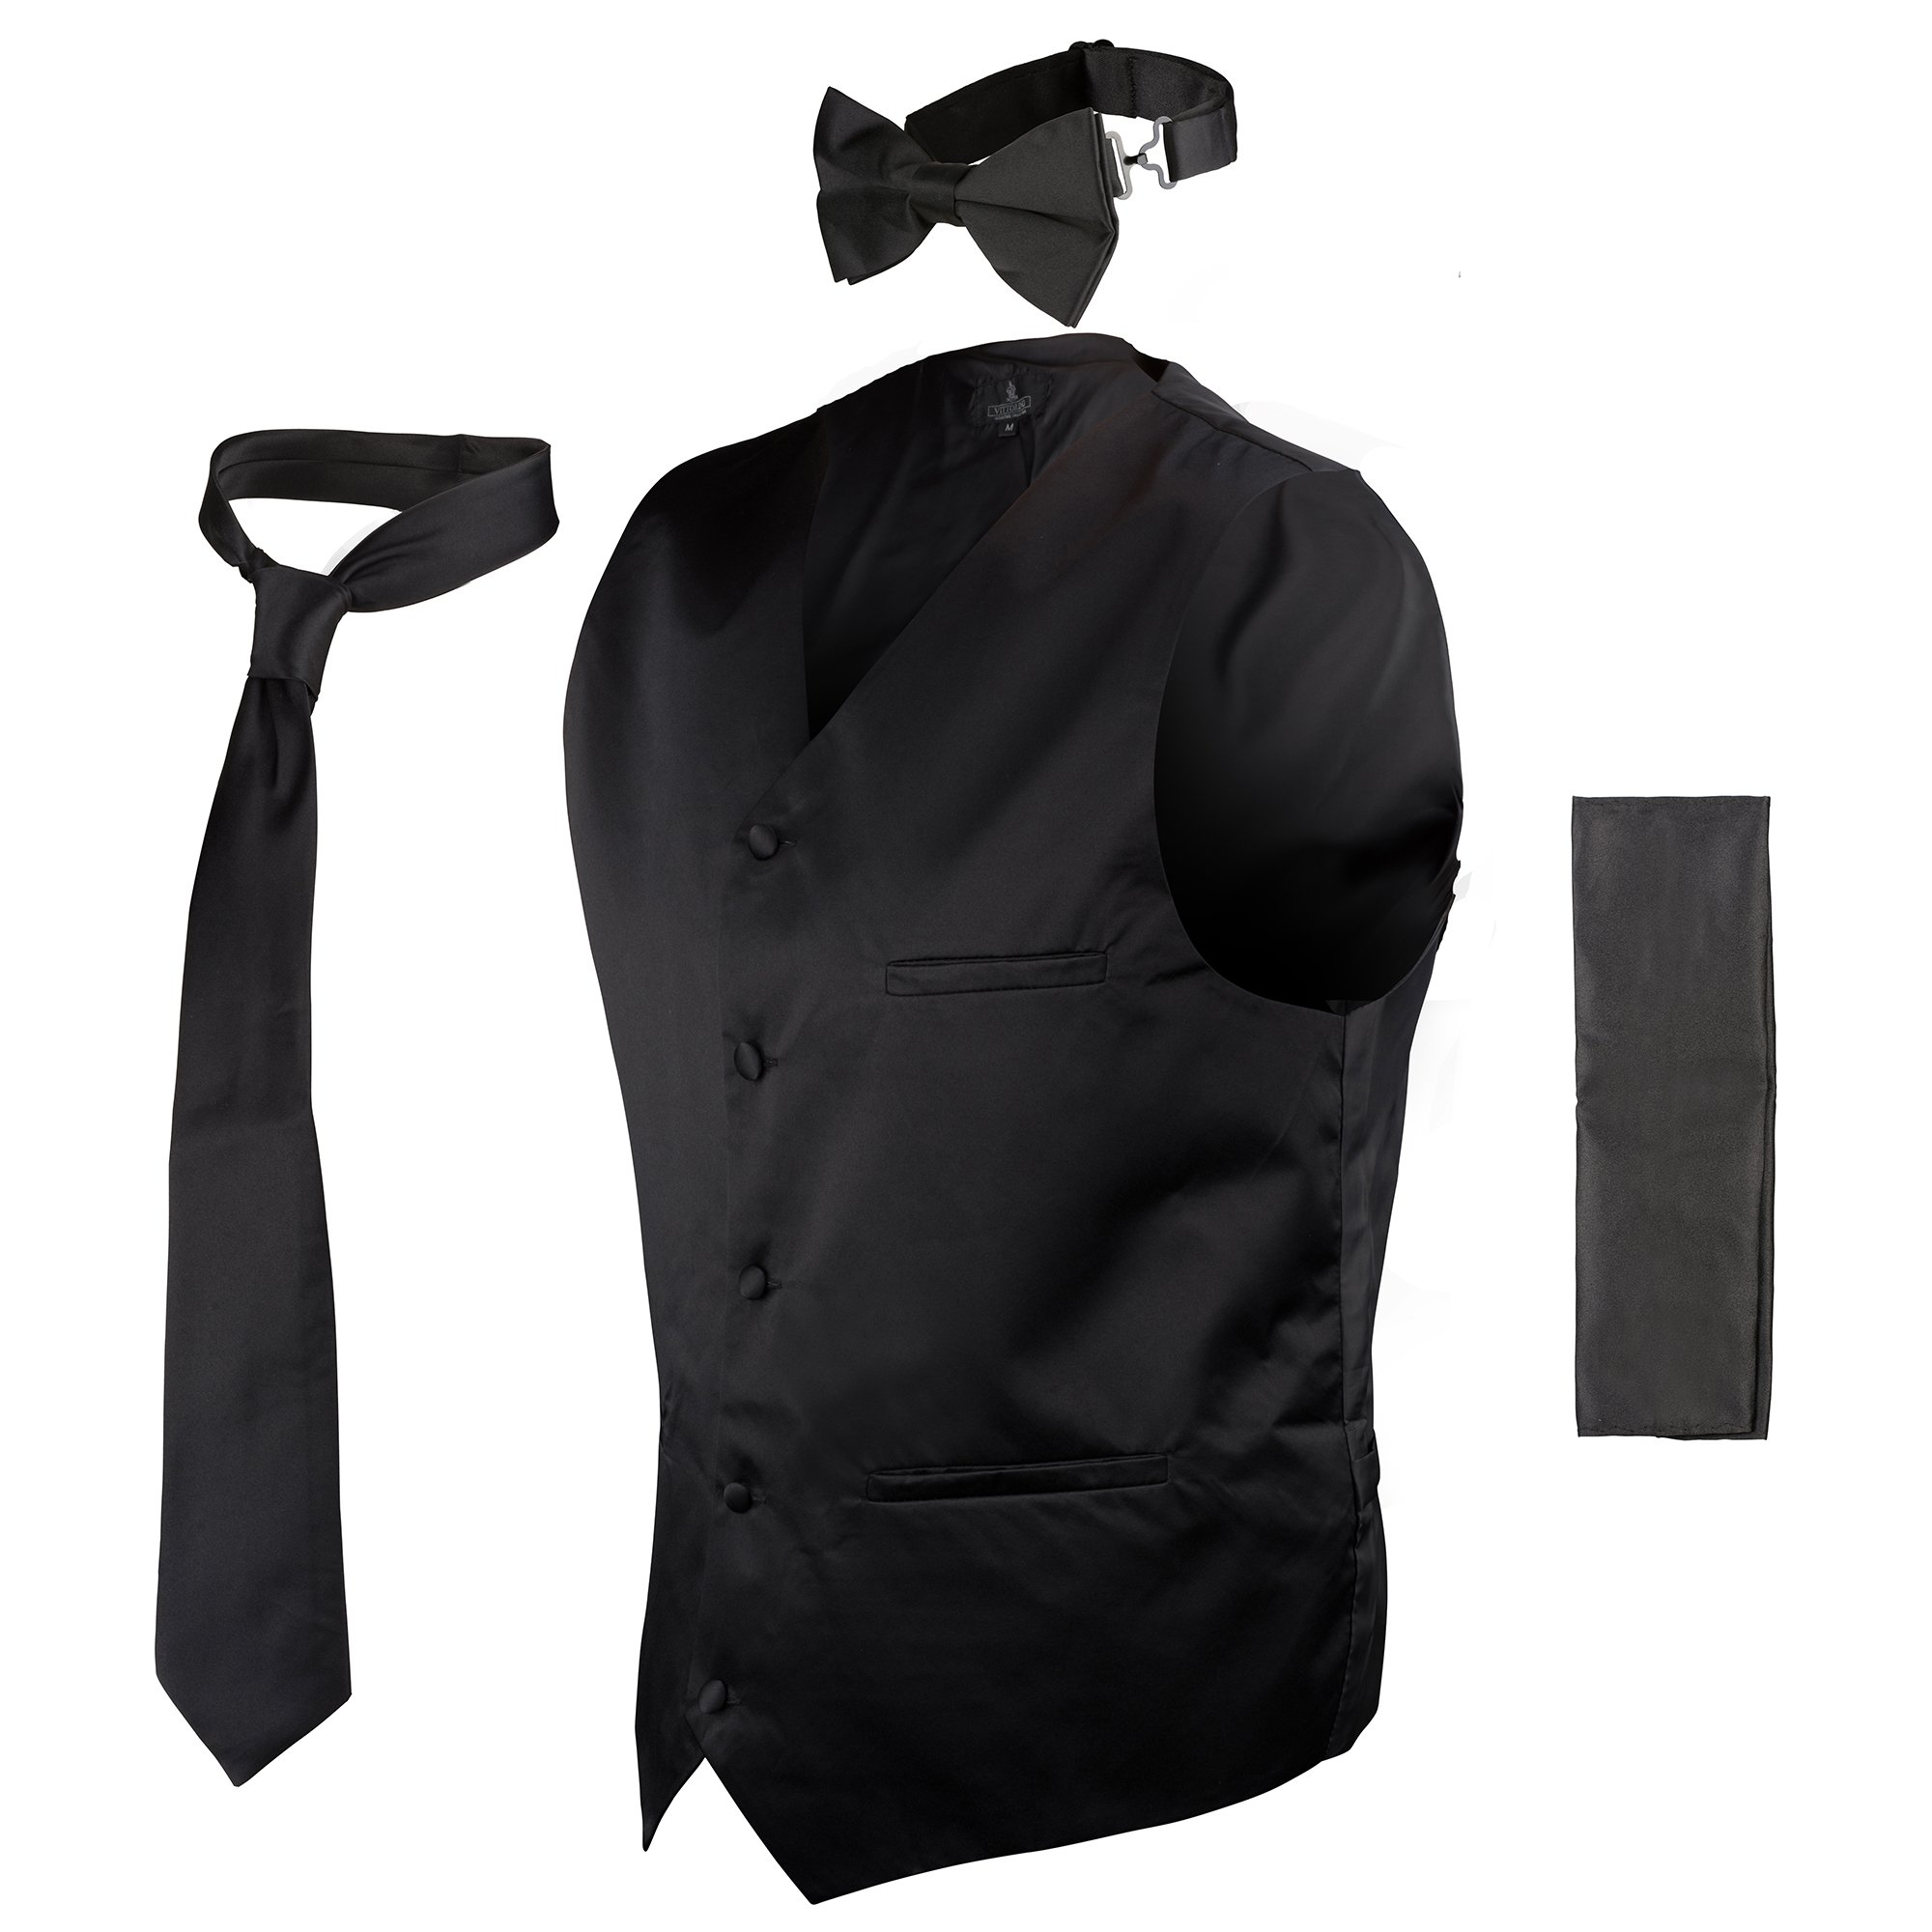 b92707c2bf76f Get Quotations · Vittorino Mens 4 Piece Formal Vest Set Combo with Tie Bow  Tie and Handkerchief